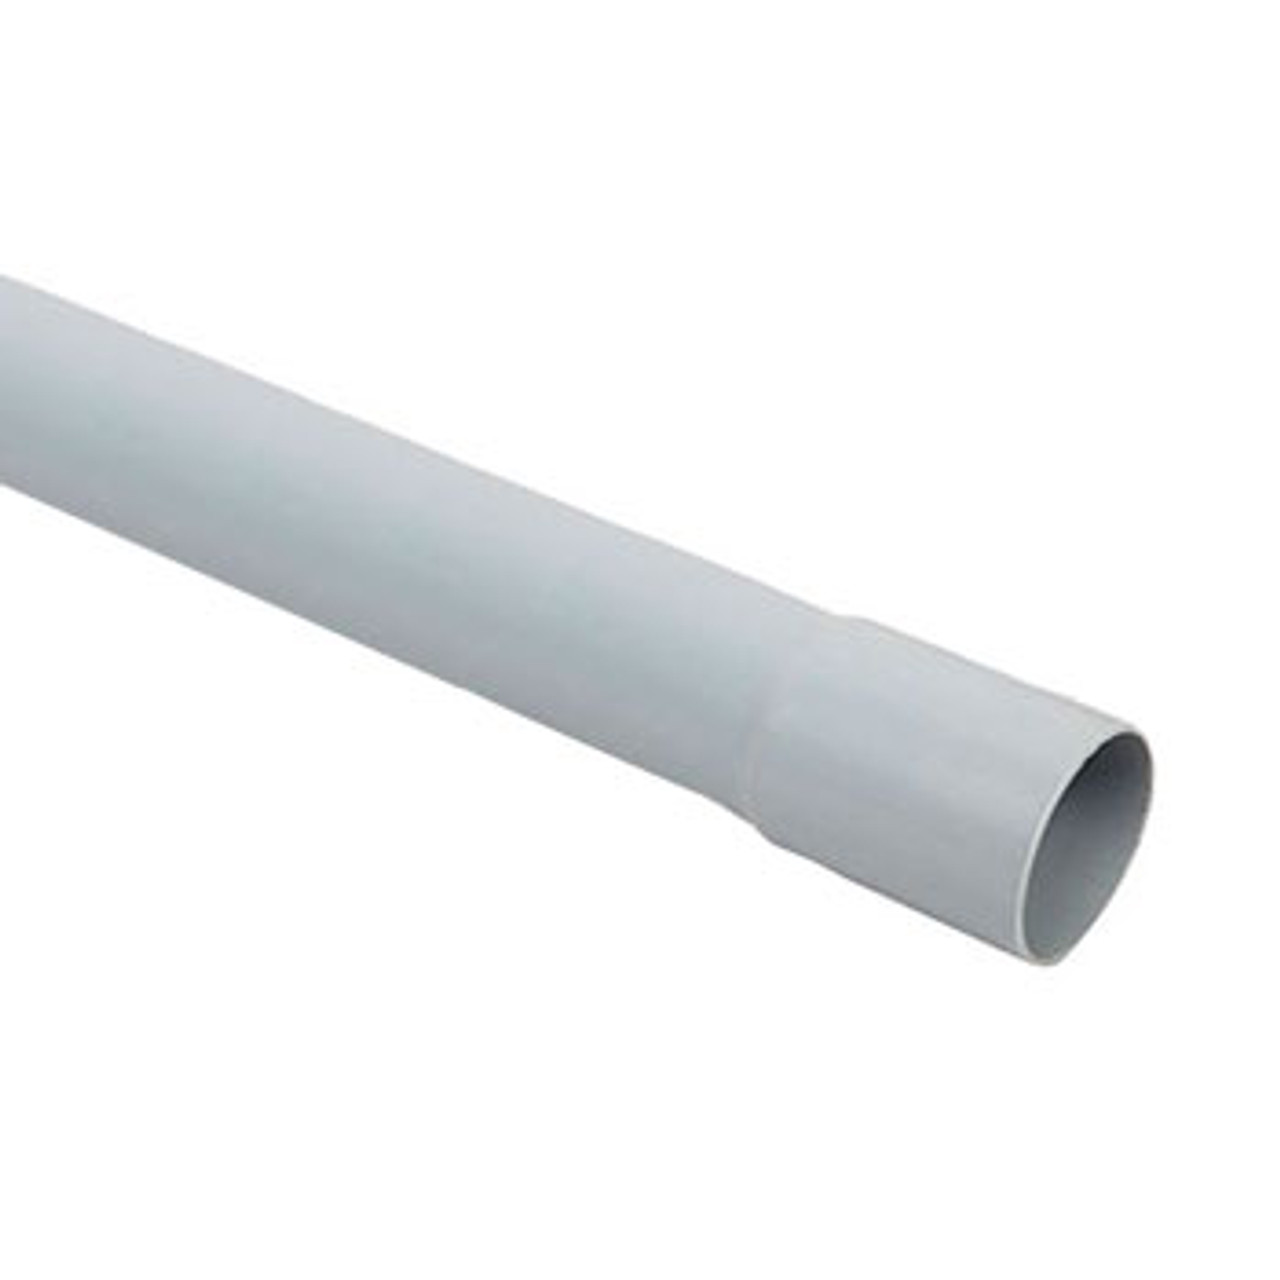 54mm grey socketed ducting.